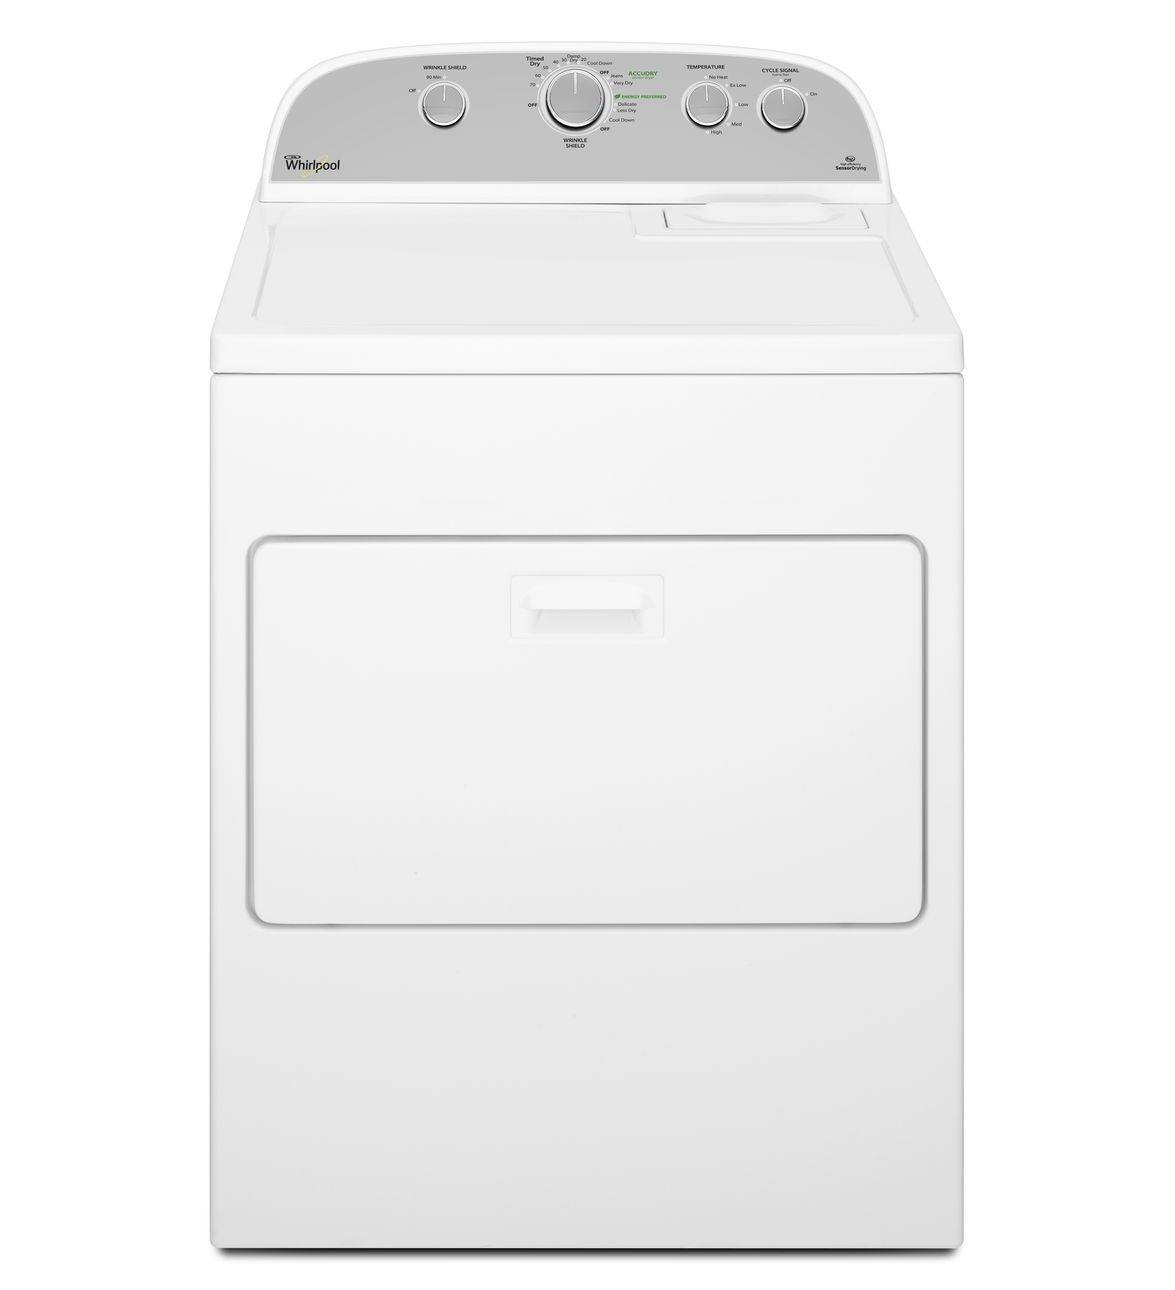 whirlpool cabrio gas dryer hookup This 88 cu ft whirlpool cabrio wgd8500dw steam gas dryer features all gas dryer purchases require a gas line hookup kit be purchased pacific sales.